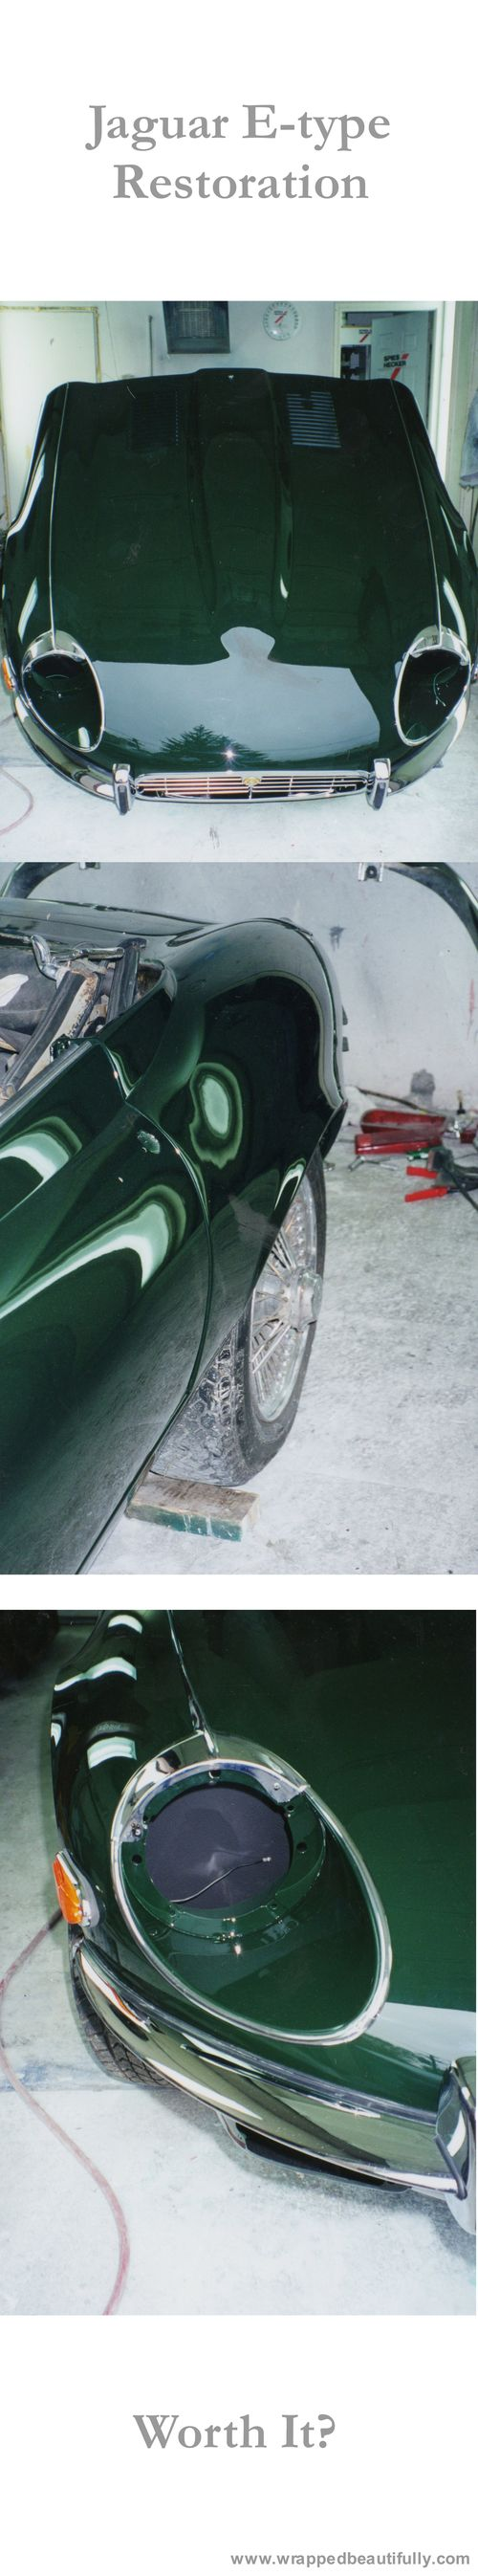 Jaguar-E-type-Restoration